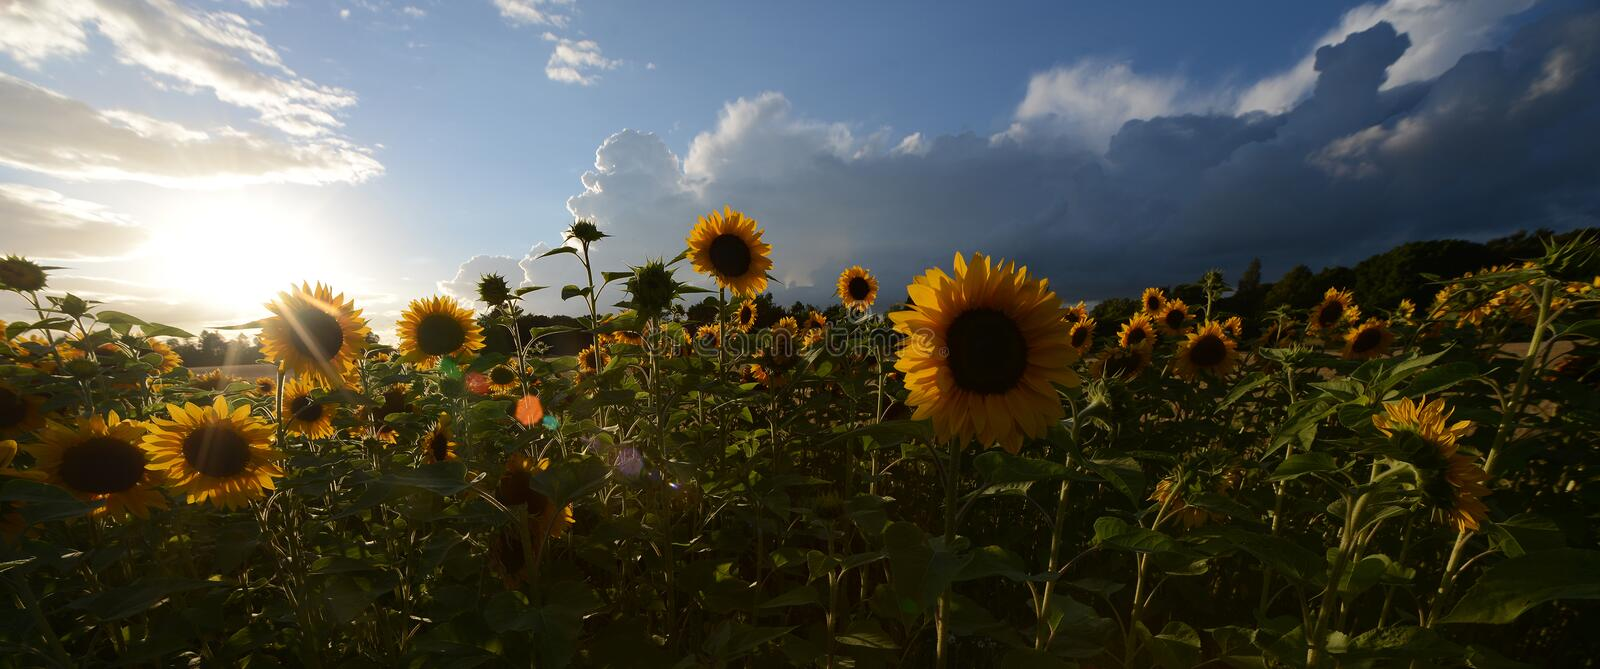 Sunflower flowers against a dark evening sky. Backlit royalty free stock image